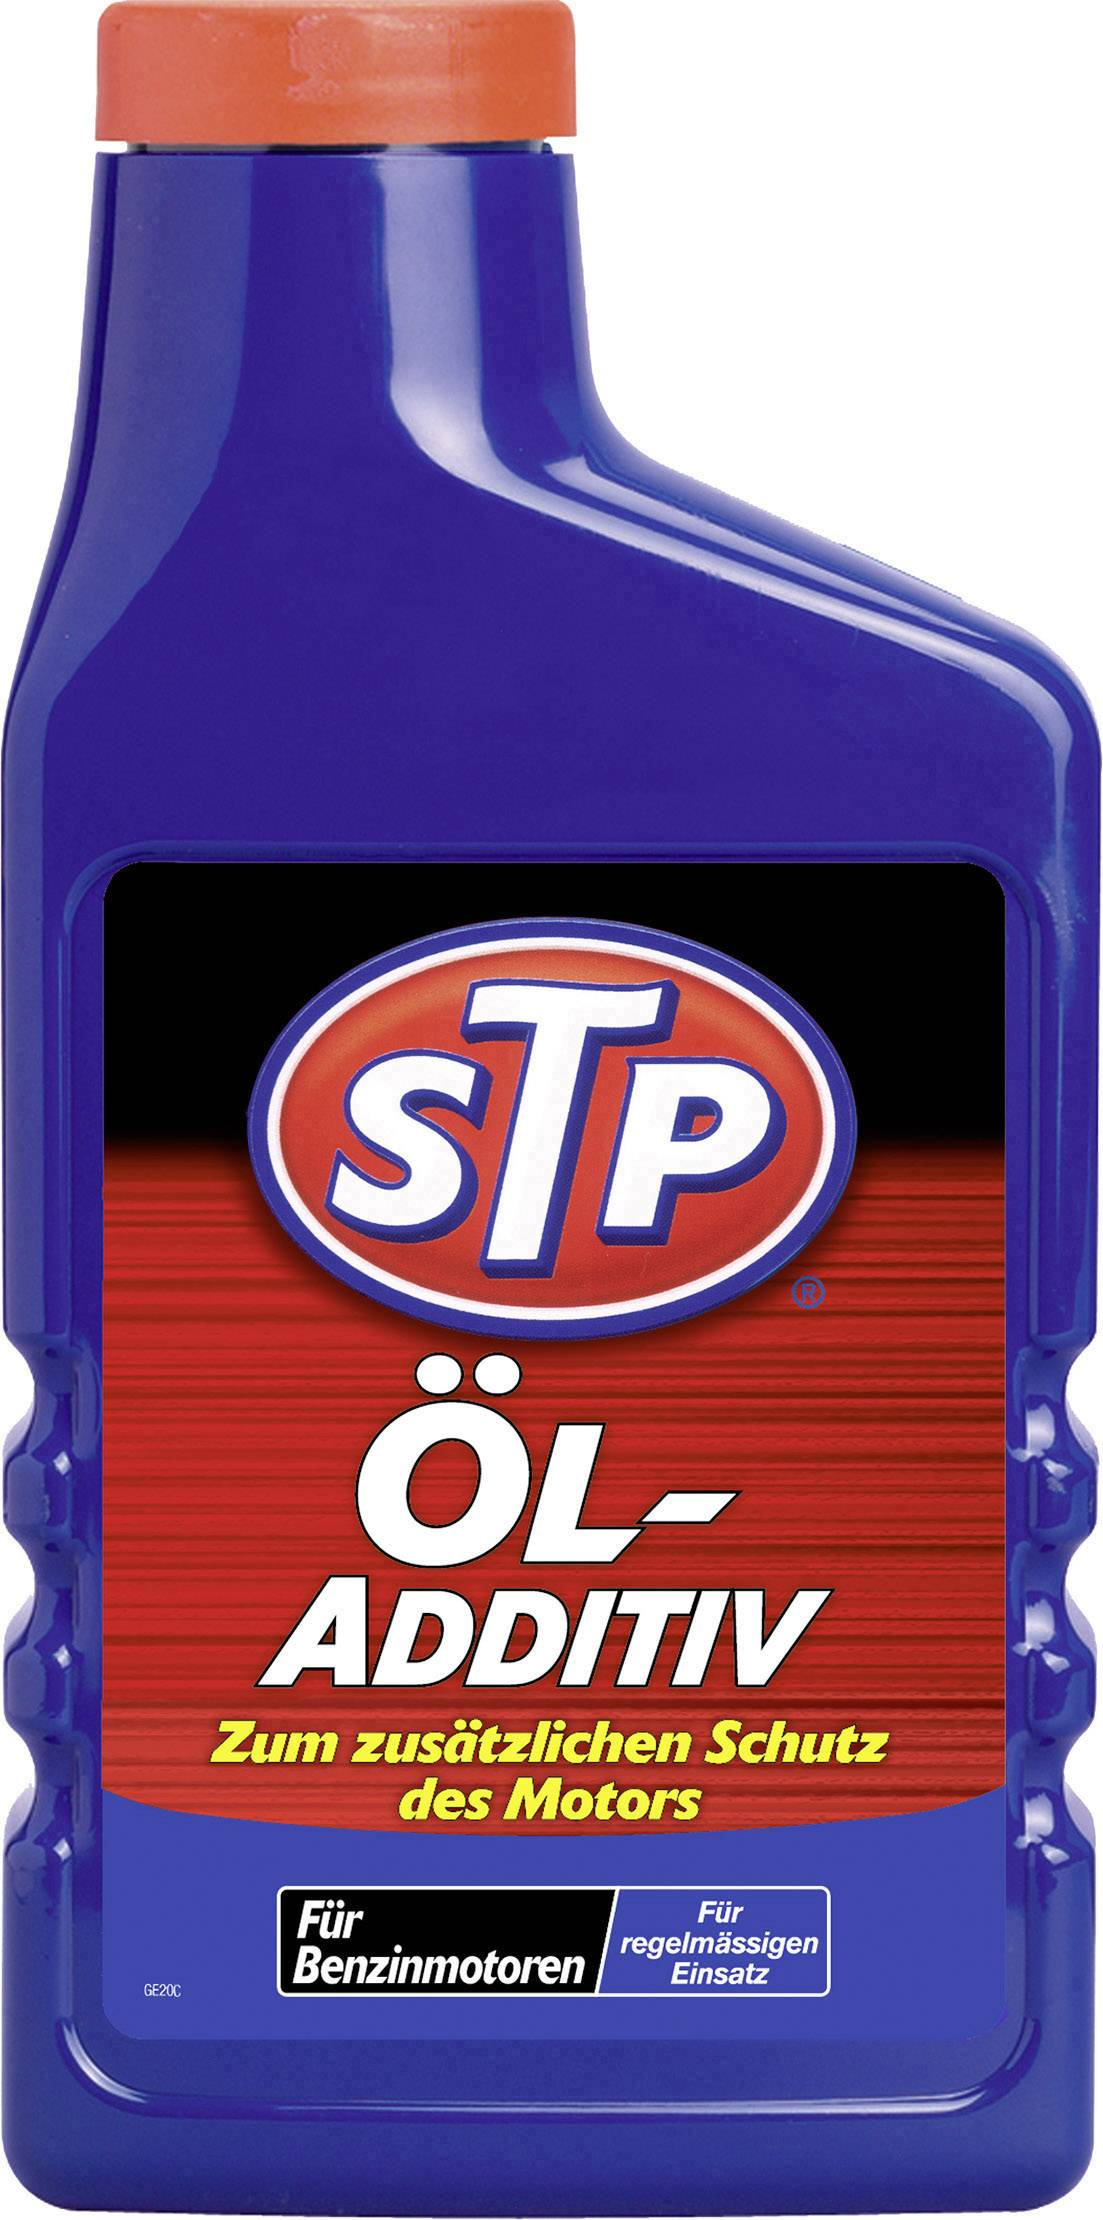 Oil addition agent for petrol engines STP GST60450GE06 450 ml